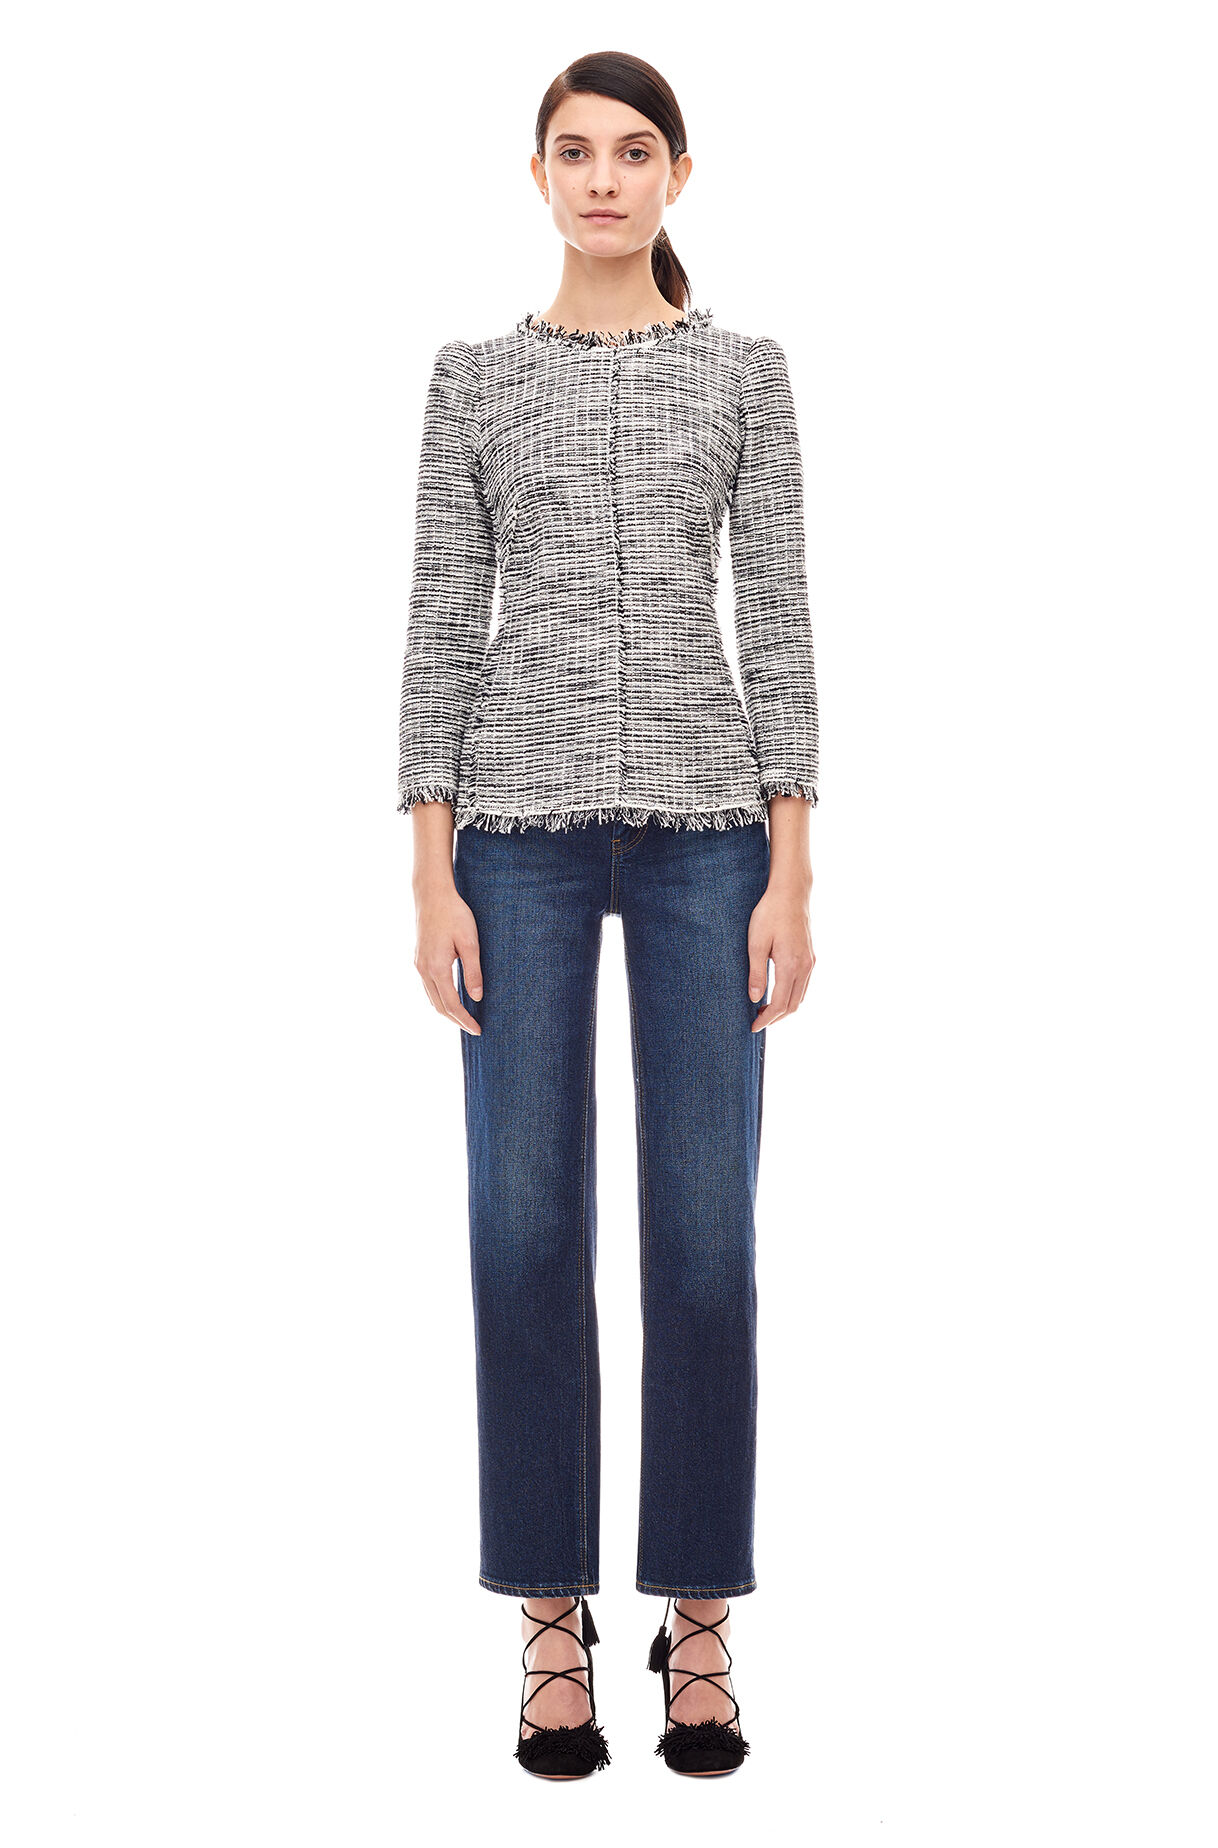 Bouclé Tweed Top - Black/Chalk